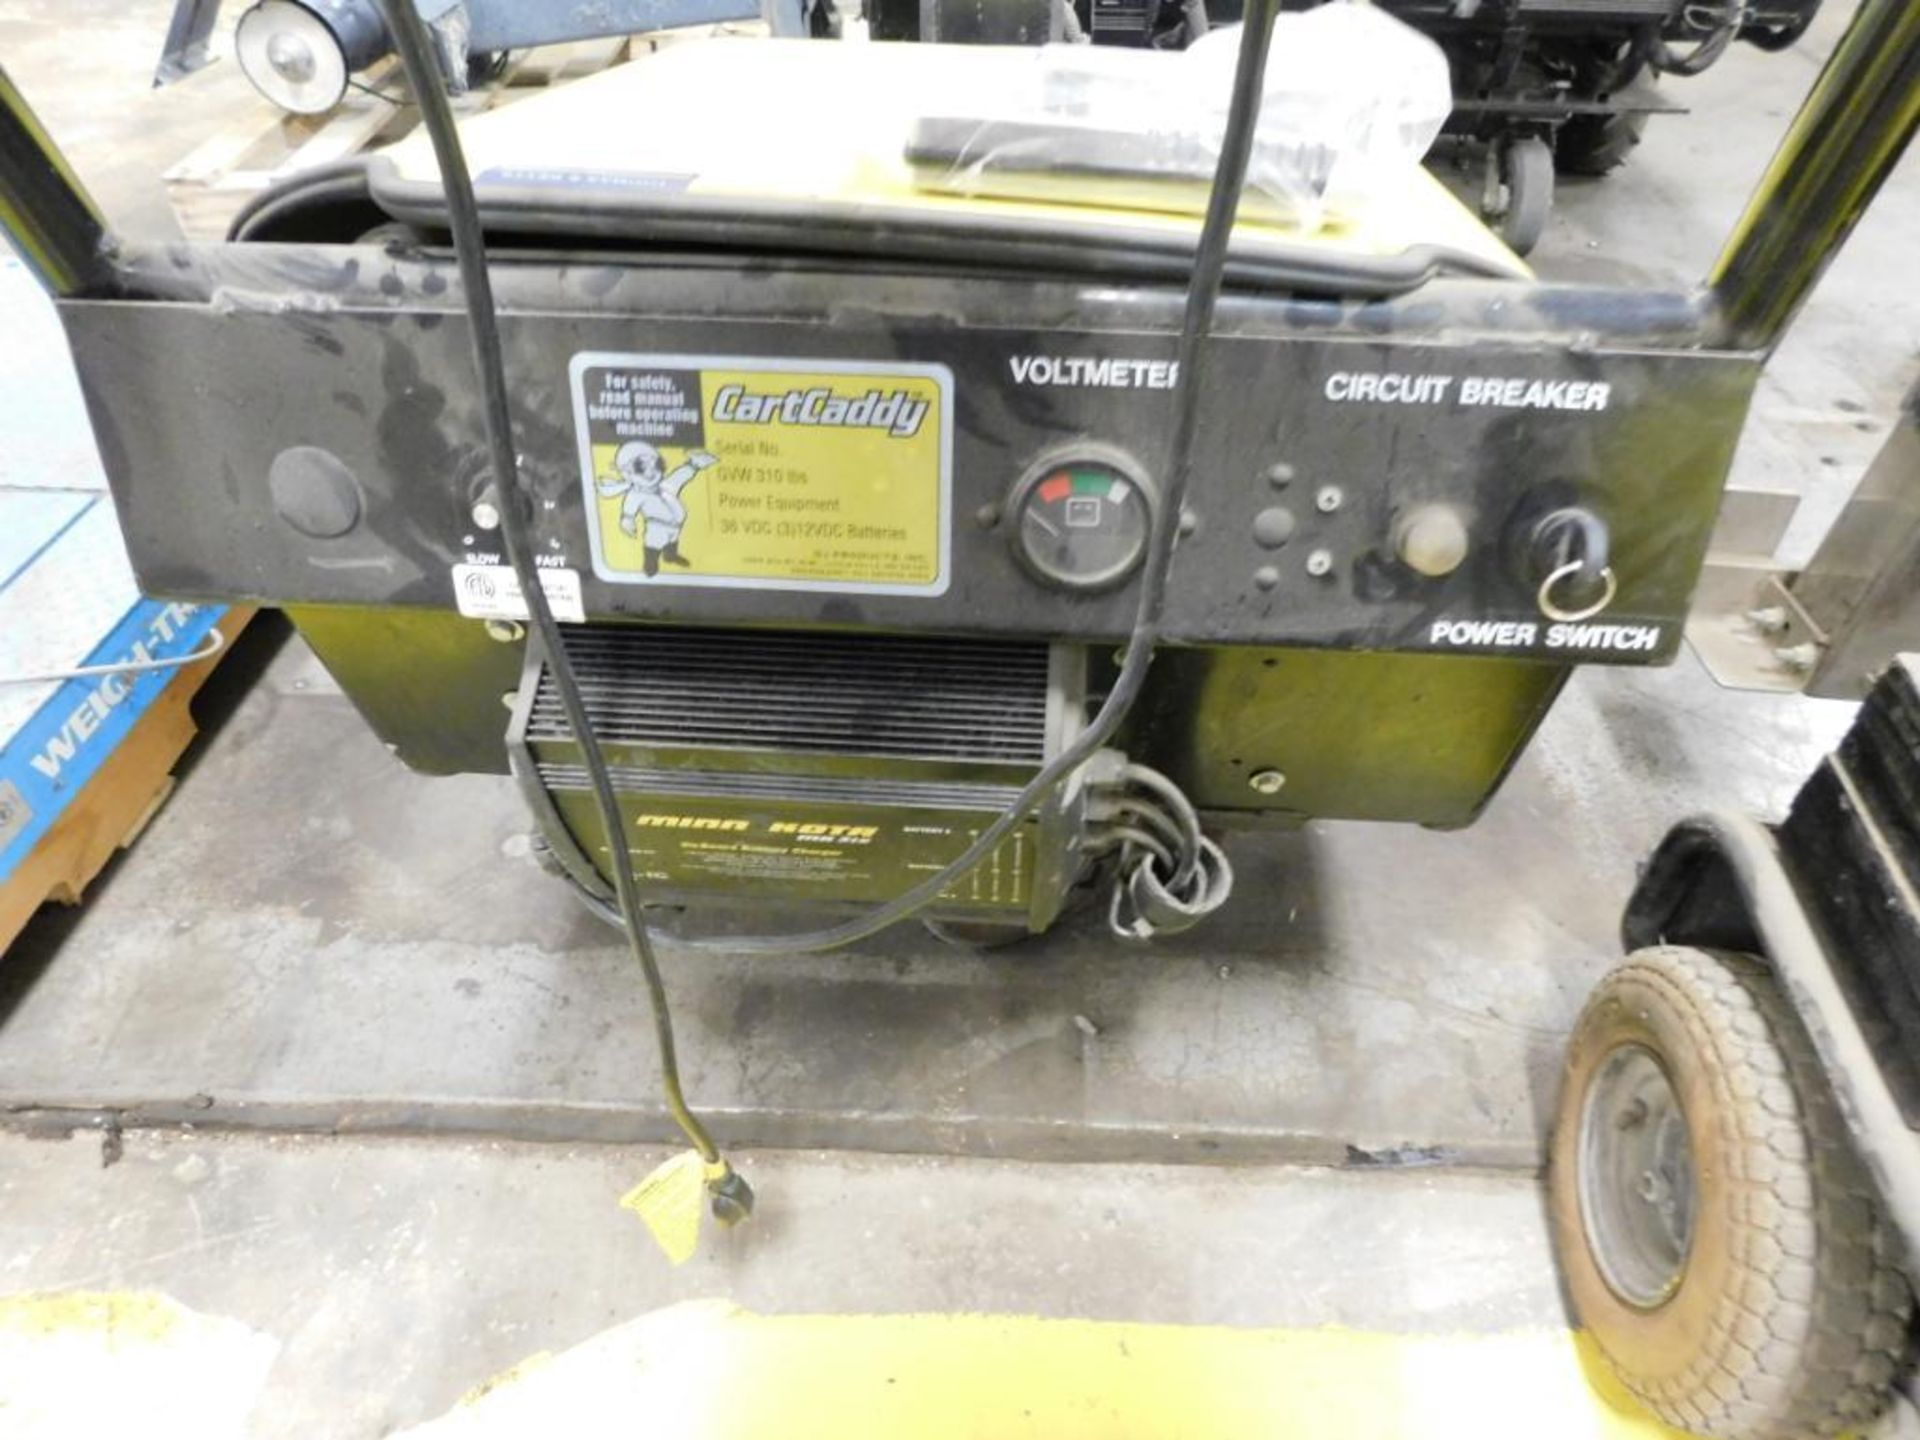 Lot 44 - ELECTRIC CART PUSHER, CART CADDY 5W, 36 v., w/onboard charger